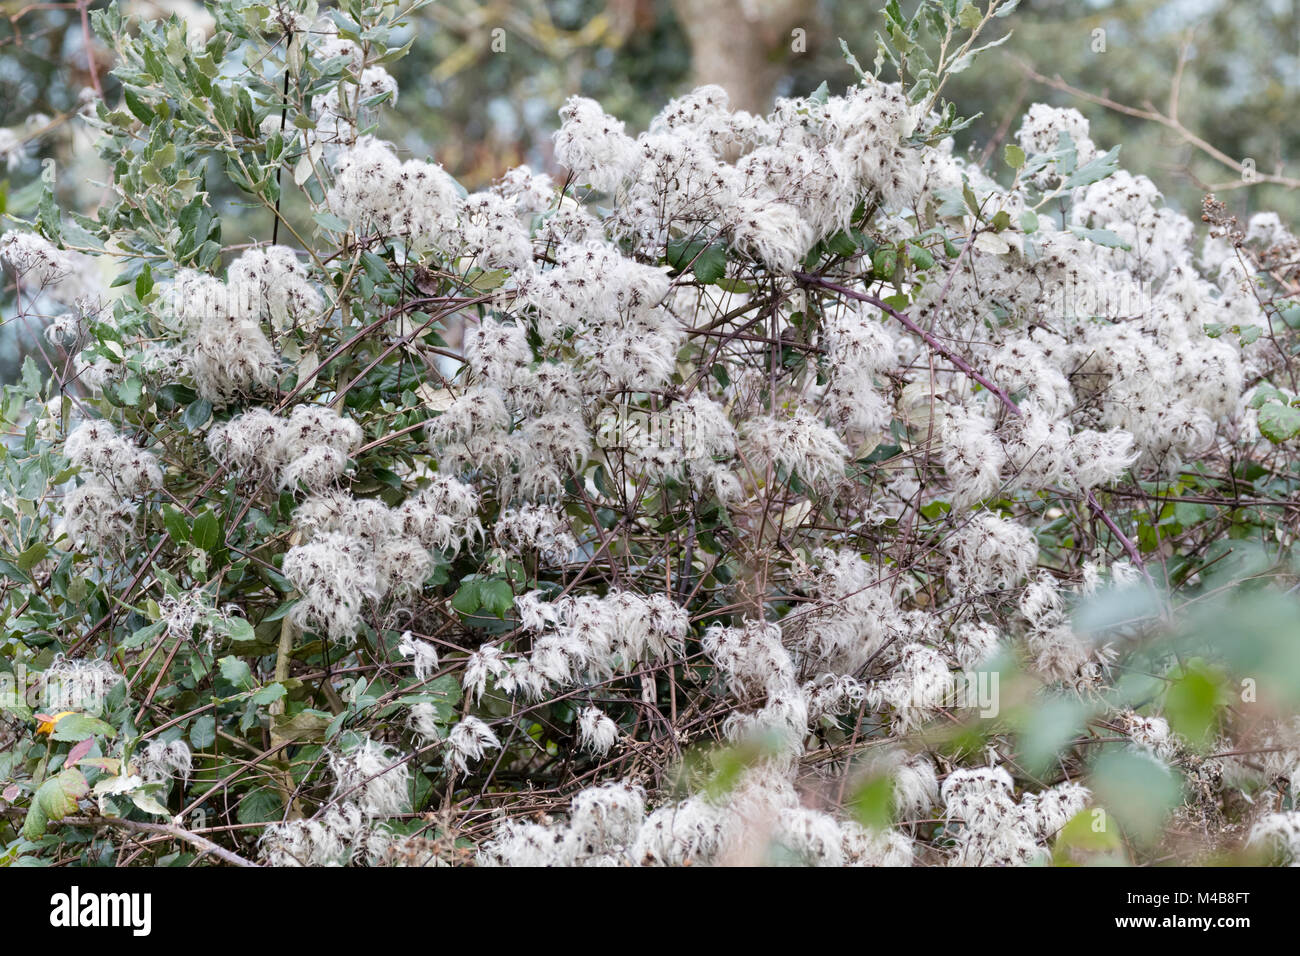 White, fuzzy seedheads of the UK native climber, Clematis vitalba, add winter interest in a woodland - Stock Image